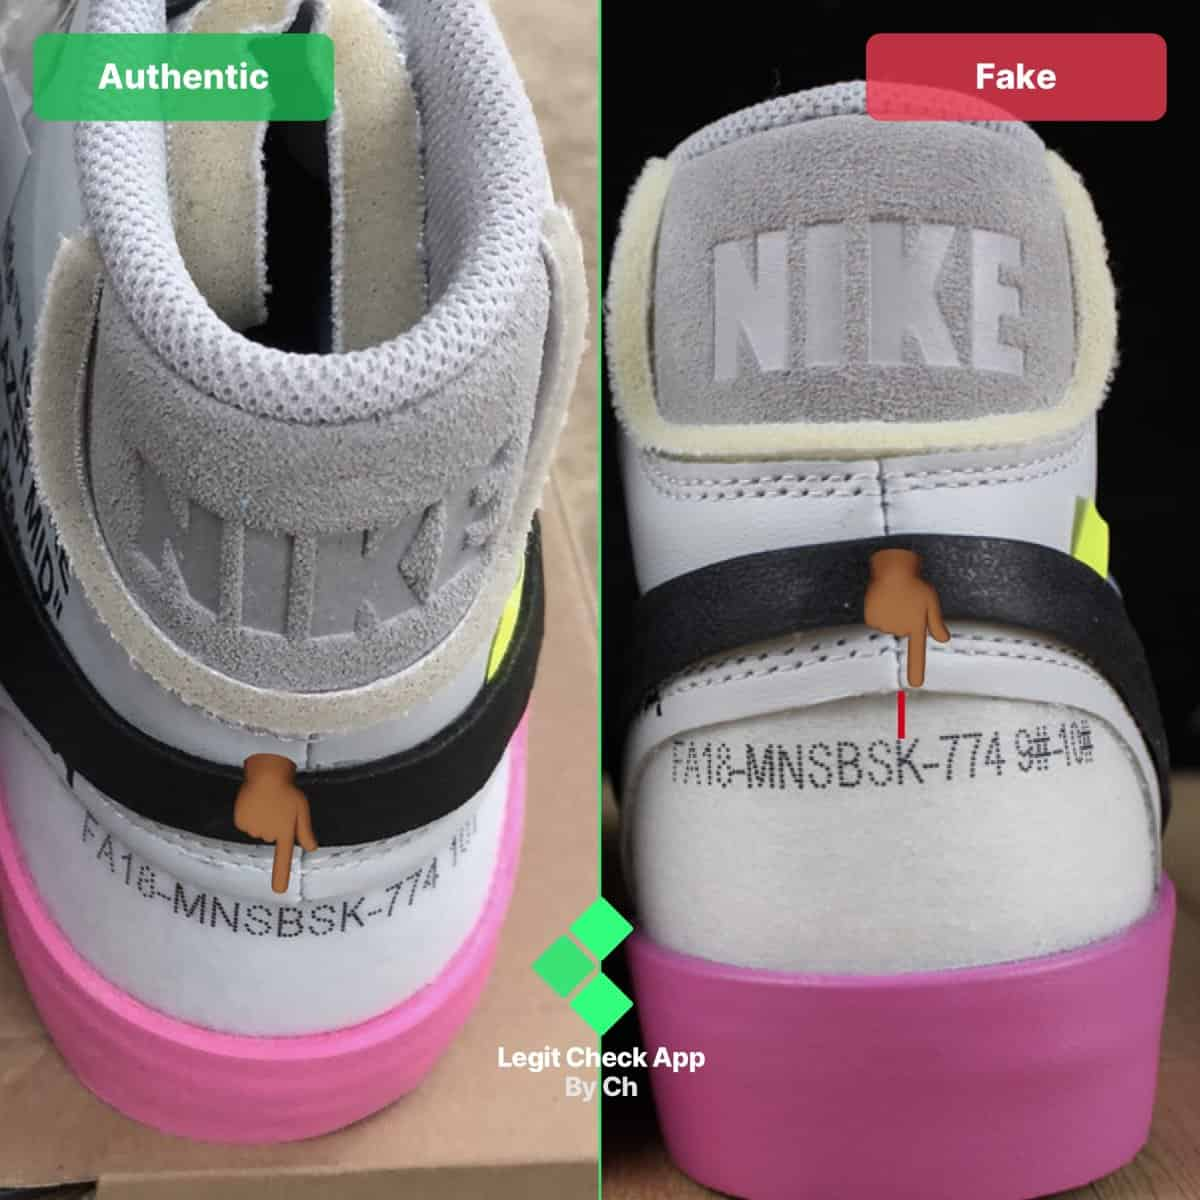 real vs fake ow blazer queen